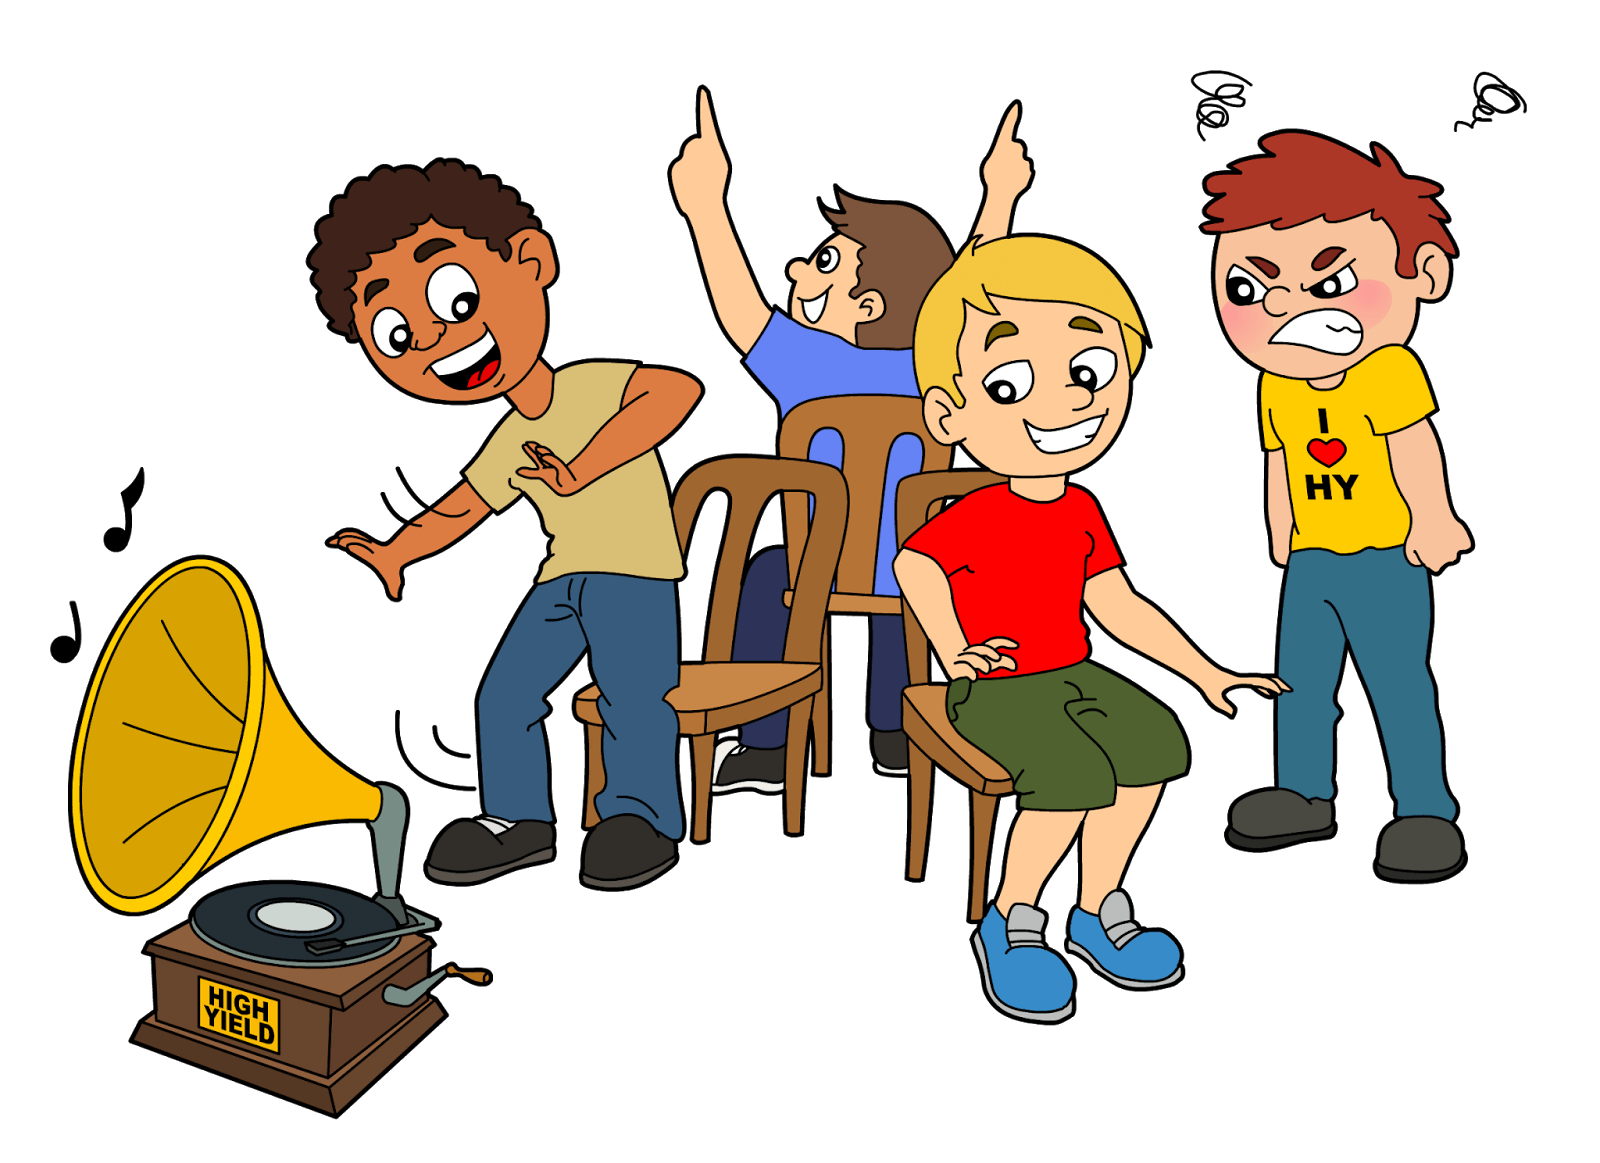 Music clipart fun. Musical chairs chamber of